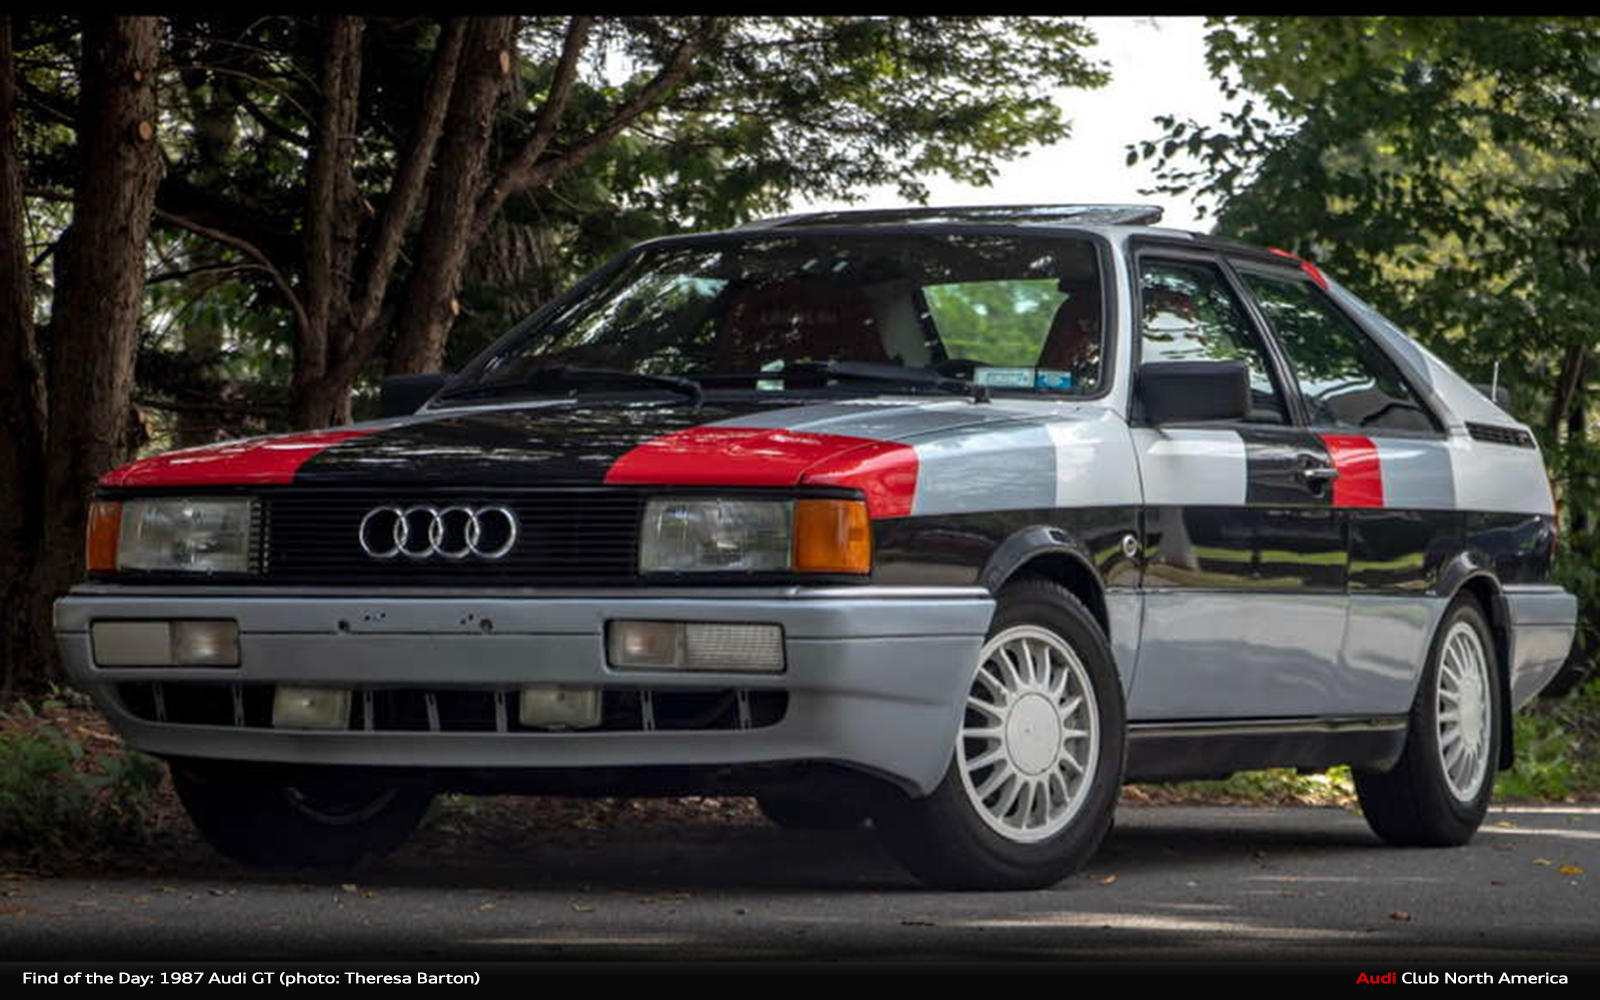 Find of the Day: 1987 Audi GT